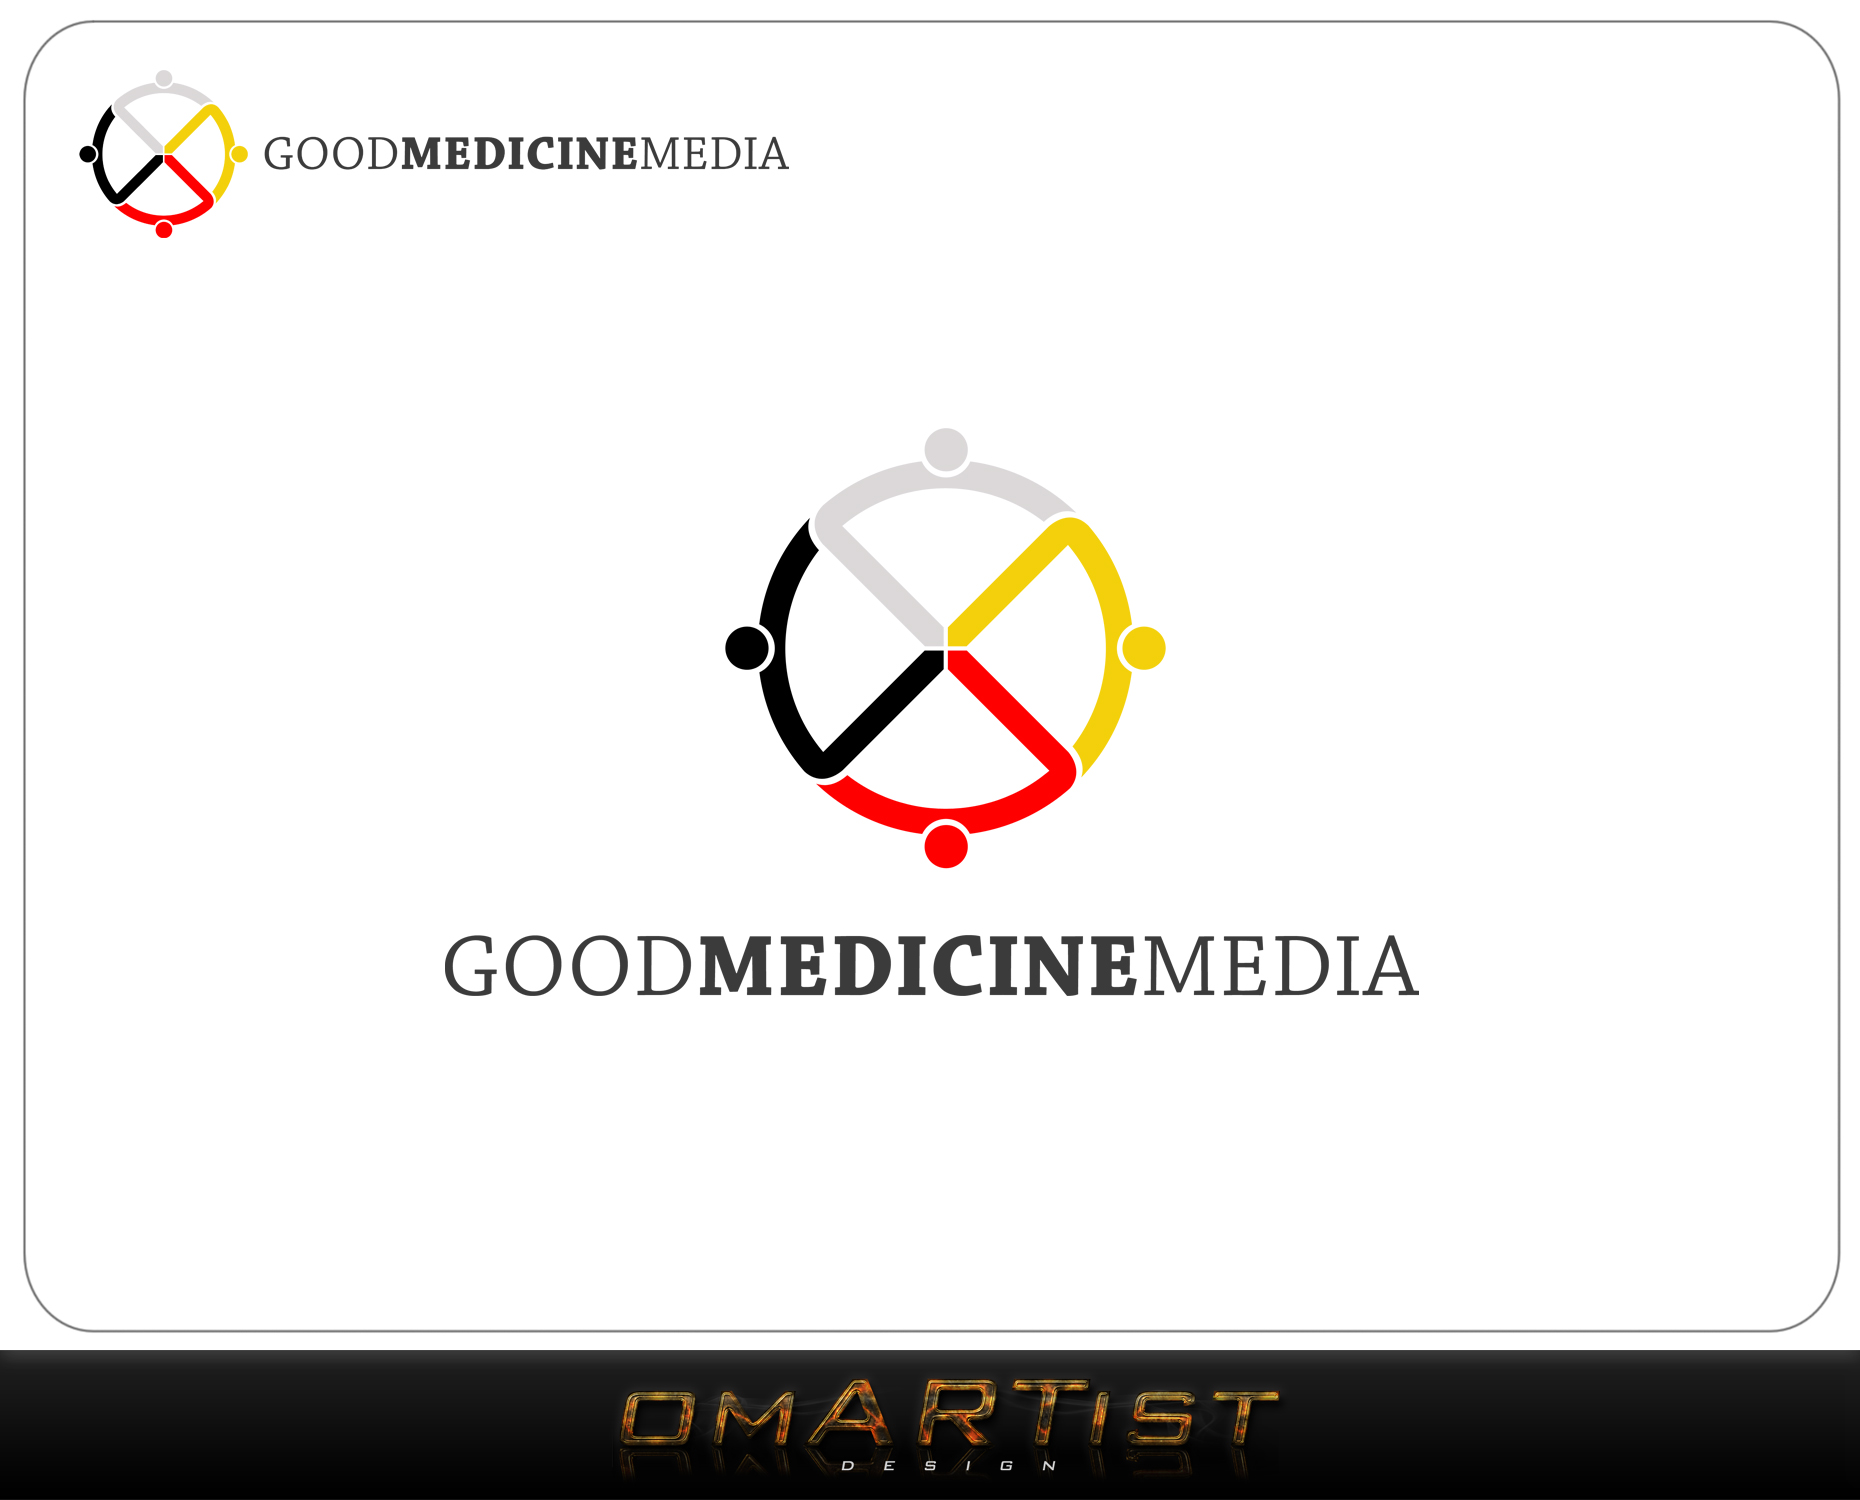 Logo Design by omARTist - Entry No. 117 in the Logo Design Contest Good Medicine Media Logo Design.